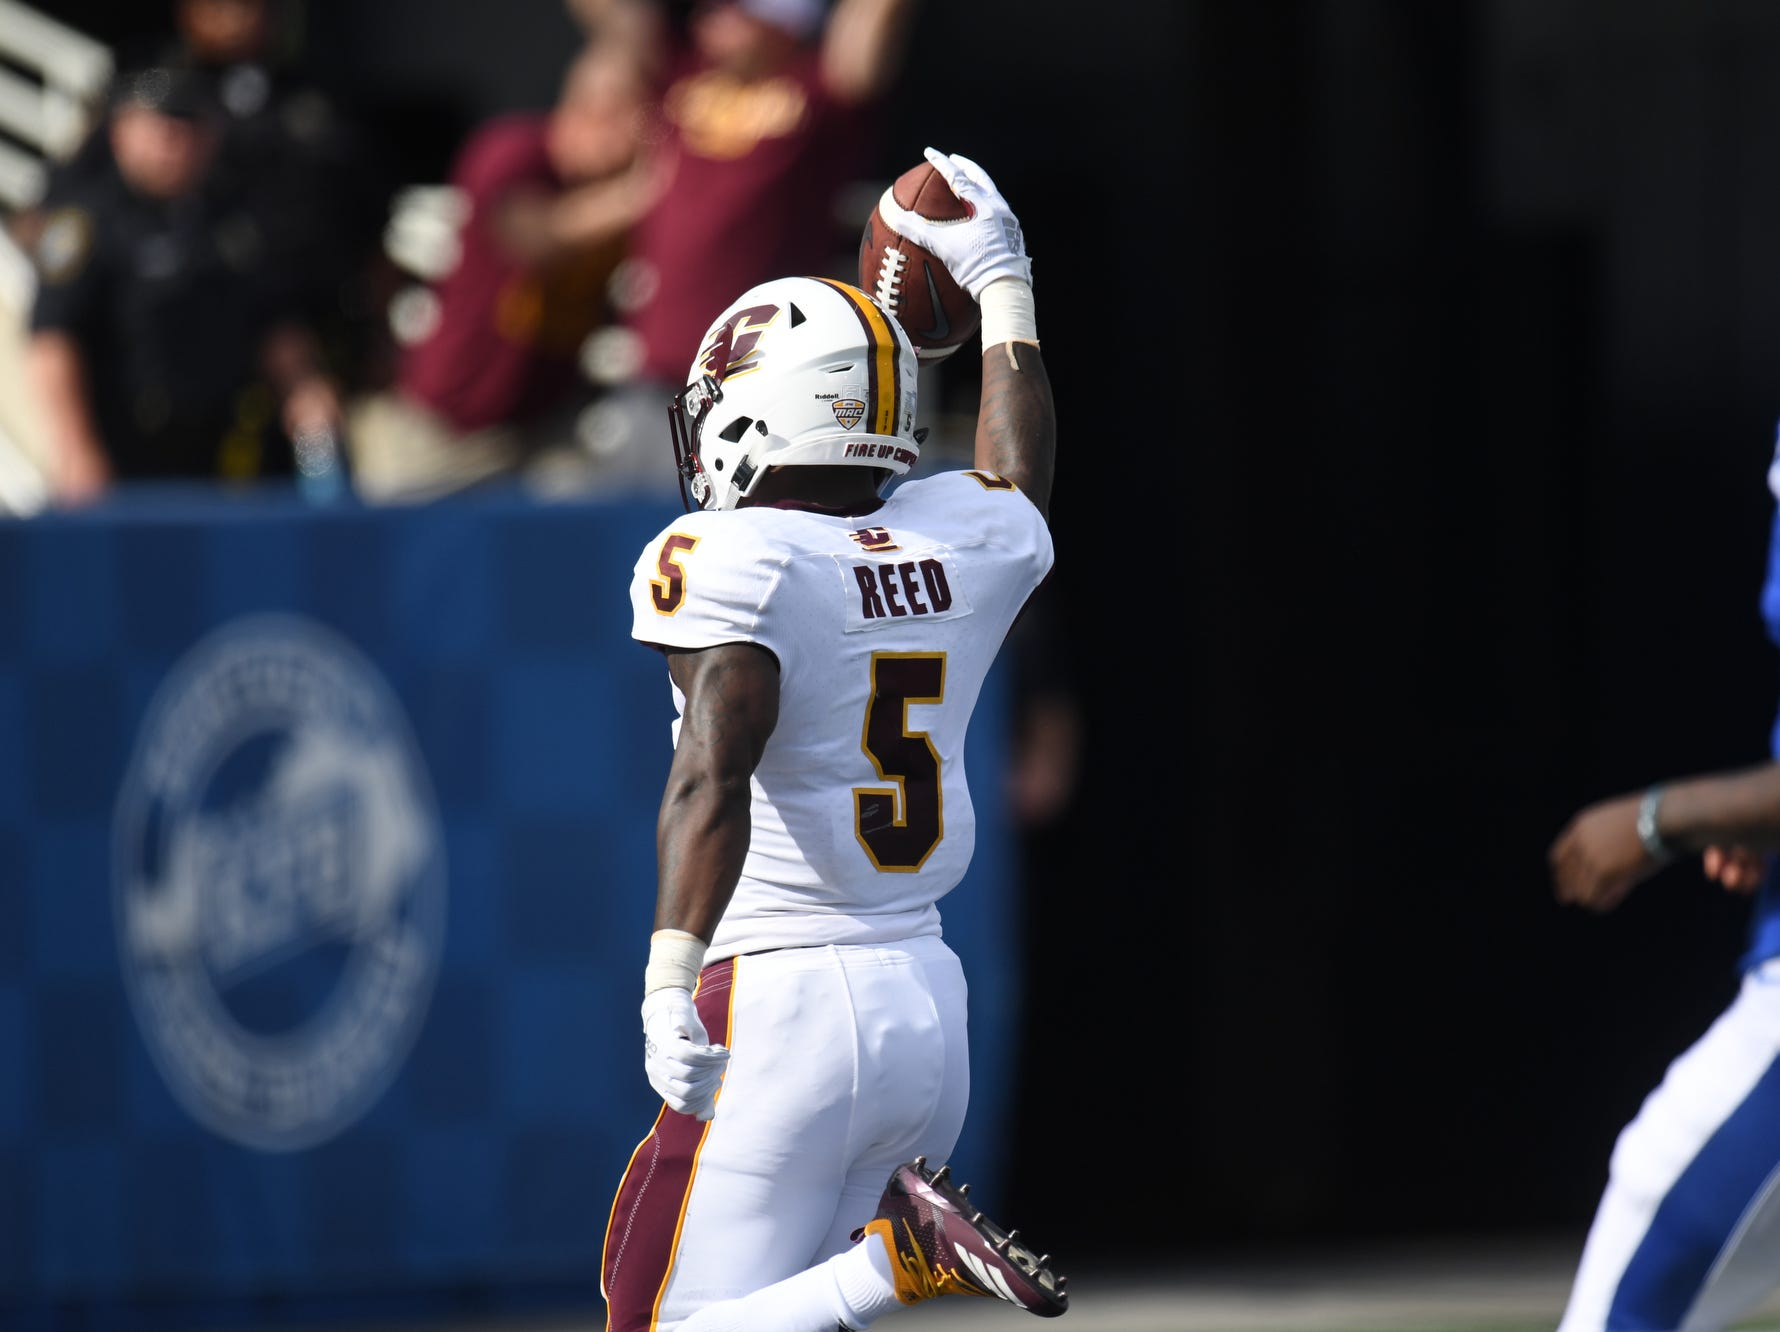 Central Michigan DB Devonni Reed scores a touchdown on an interception during the University of Kentucky football game against Central Michigan at Kroger Field in Lexington, Kentucky on Saturday, September 1, 2018.